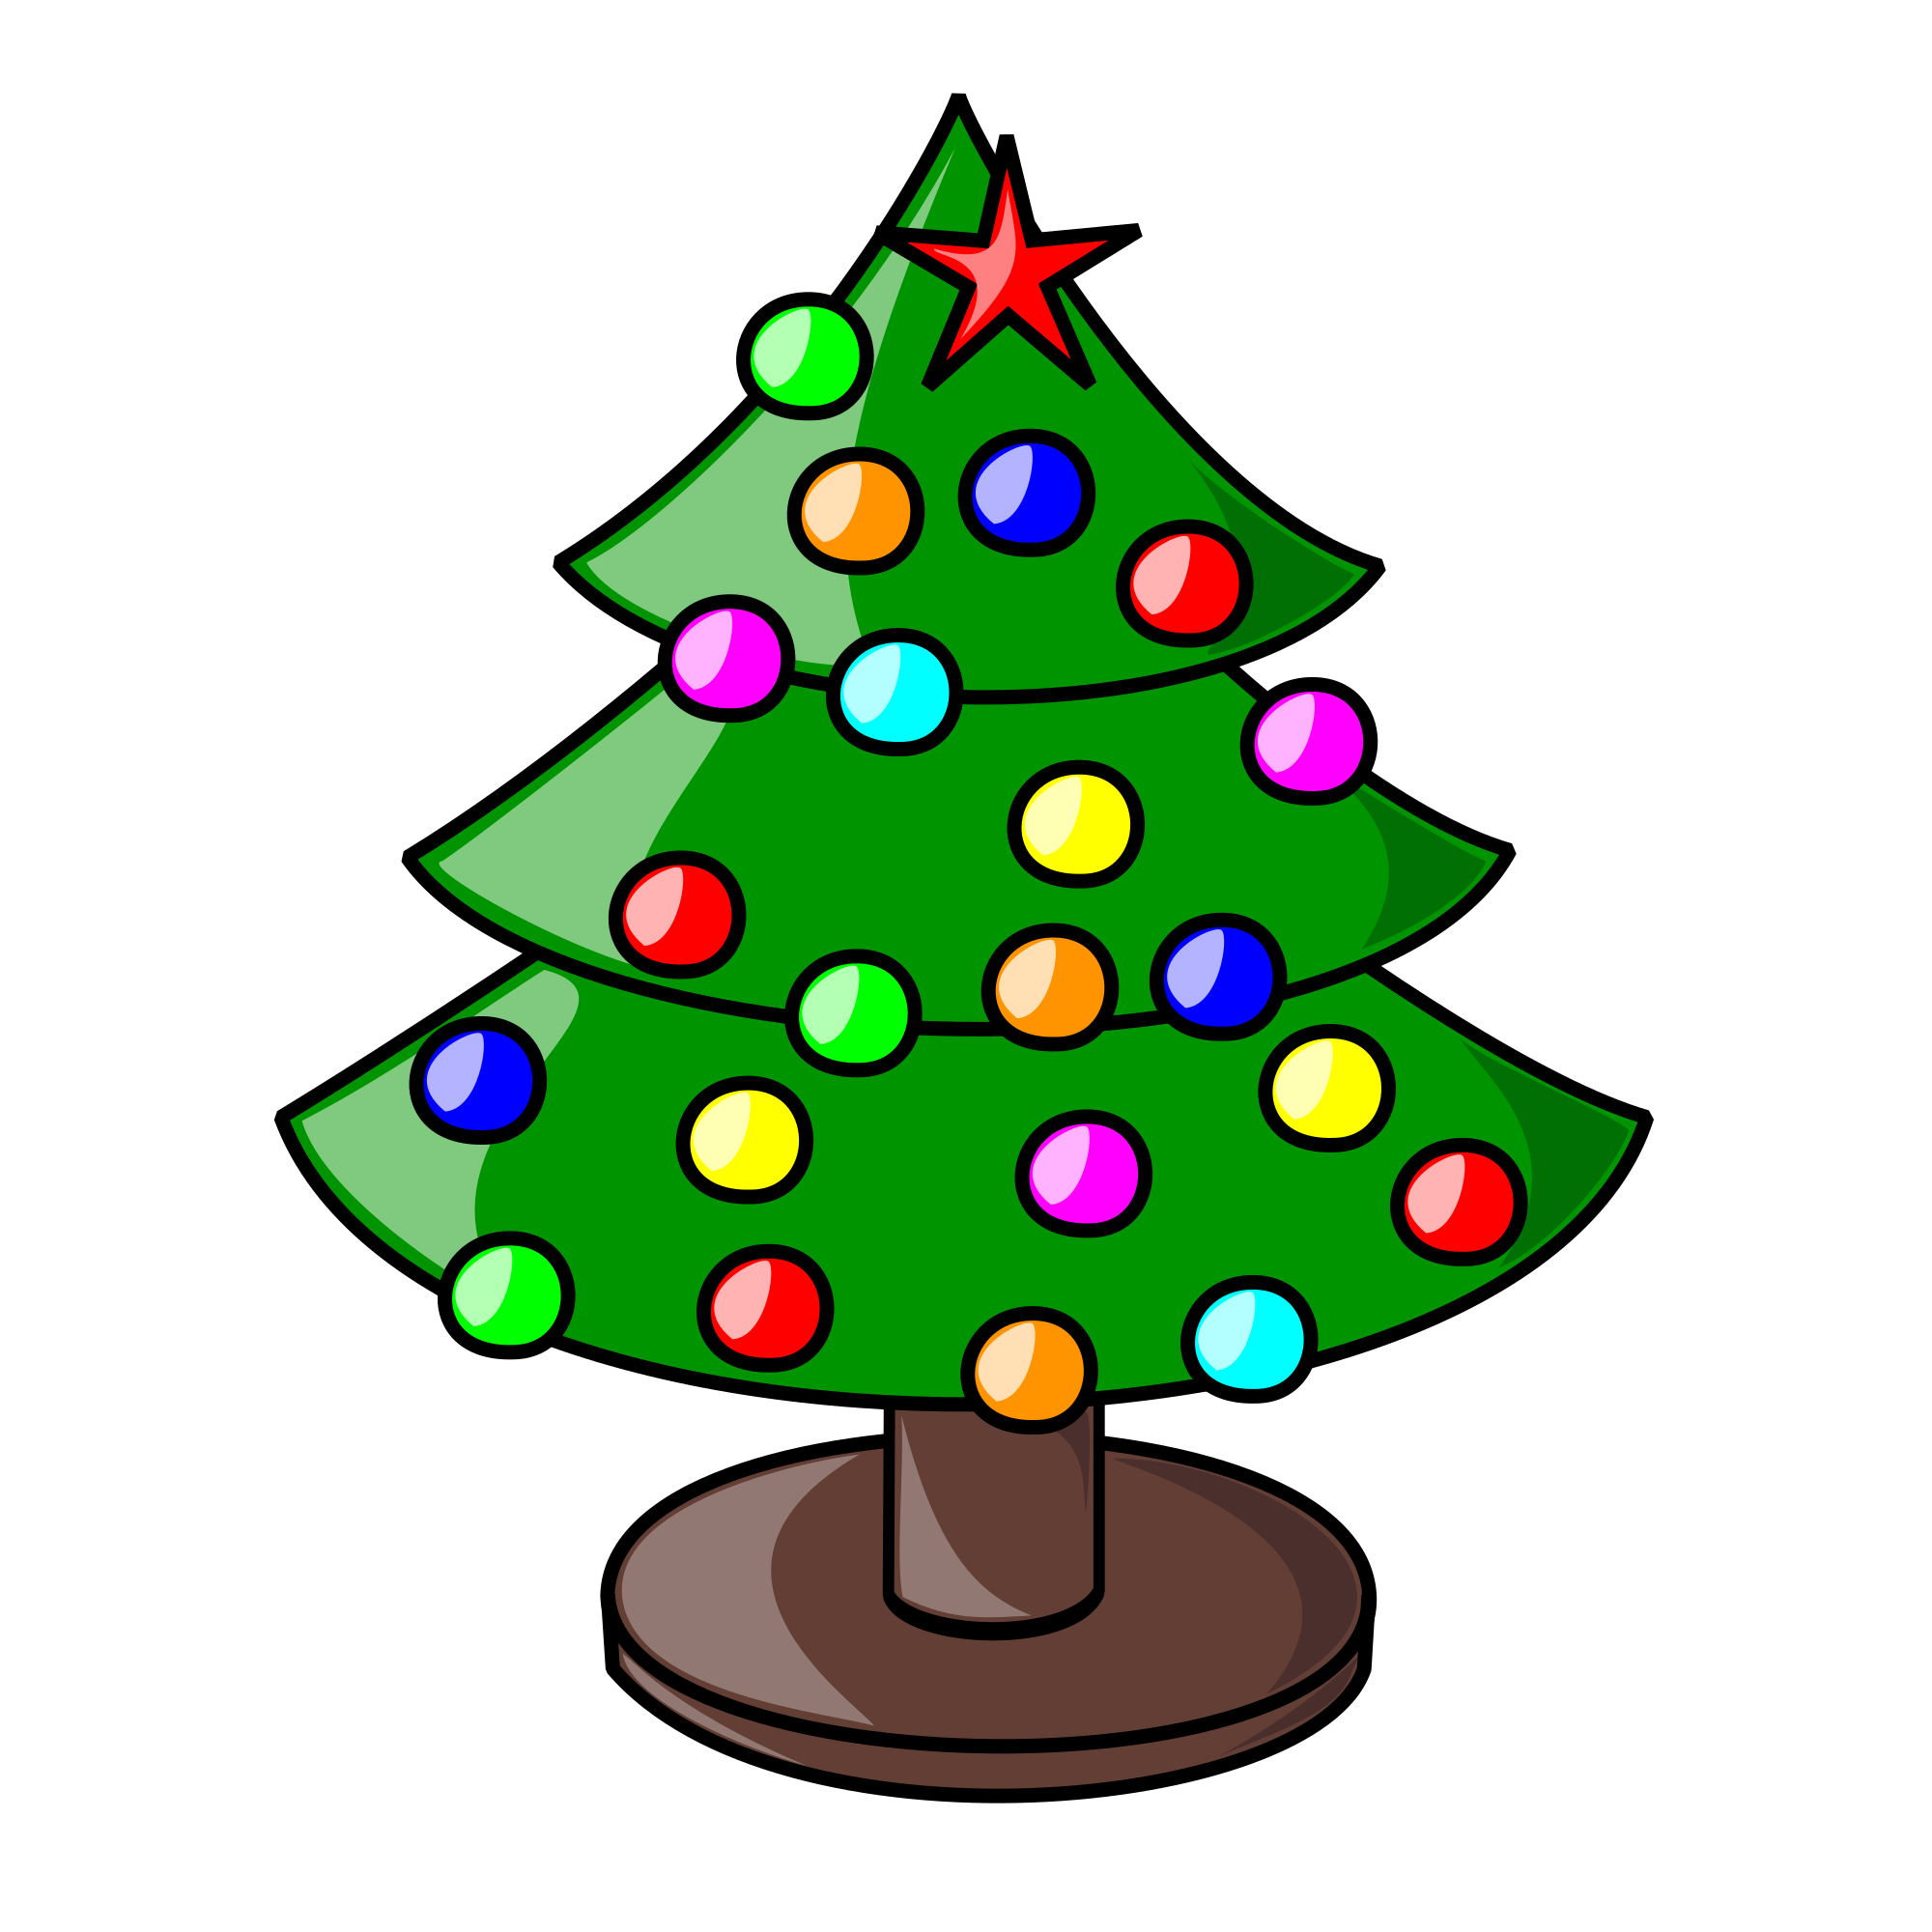 File:Xmas tree.svg - Wikimedia Commons